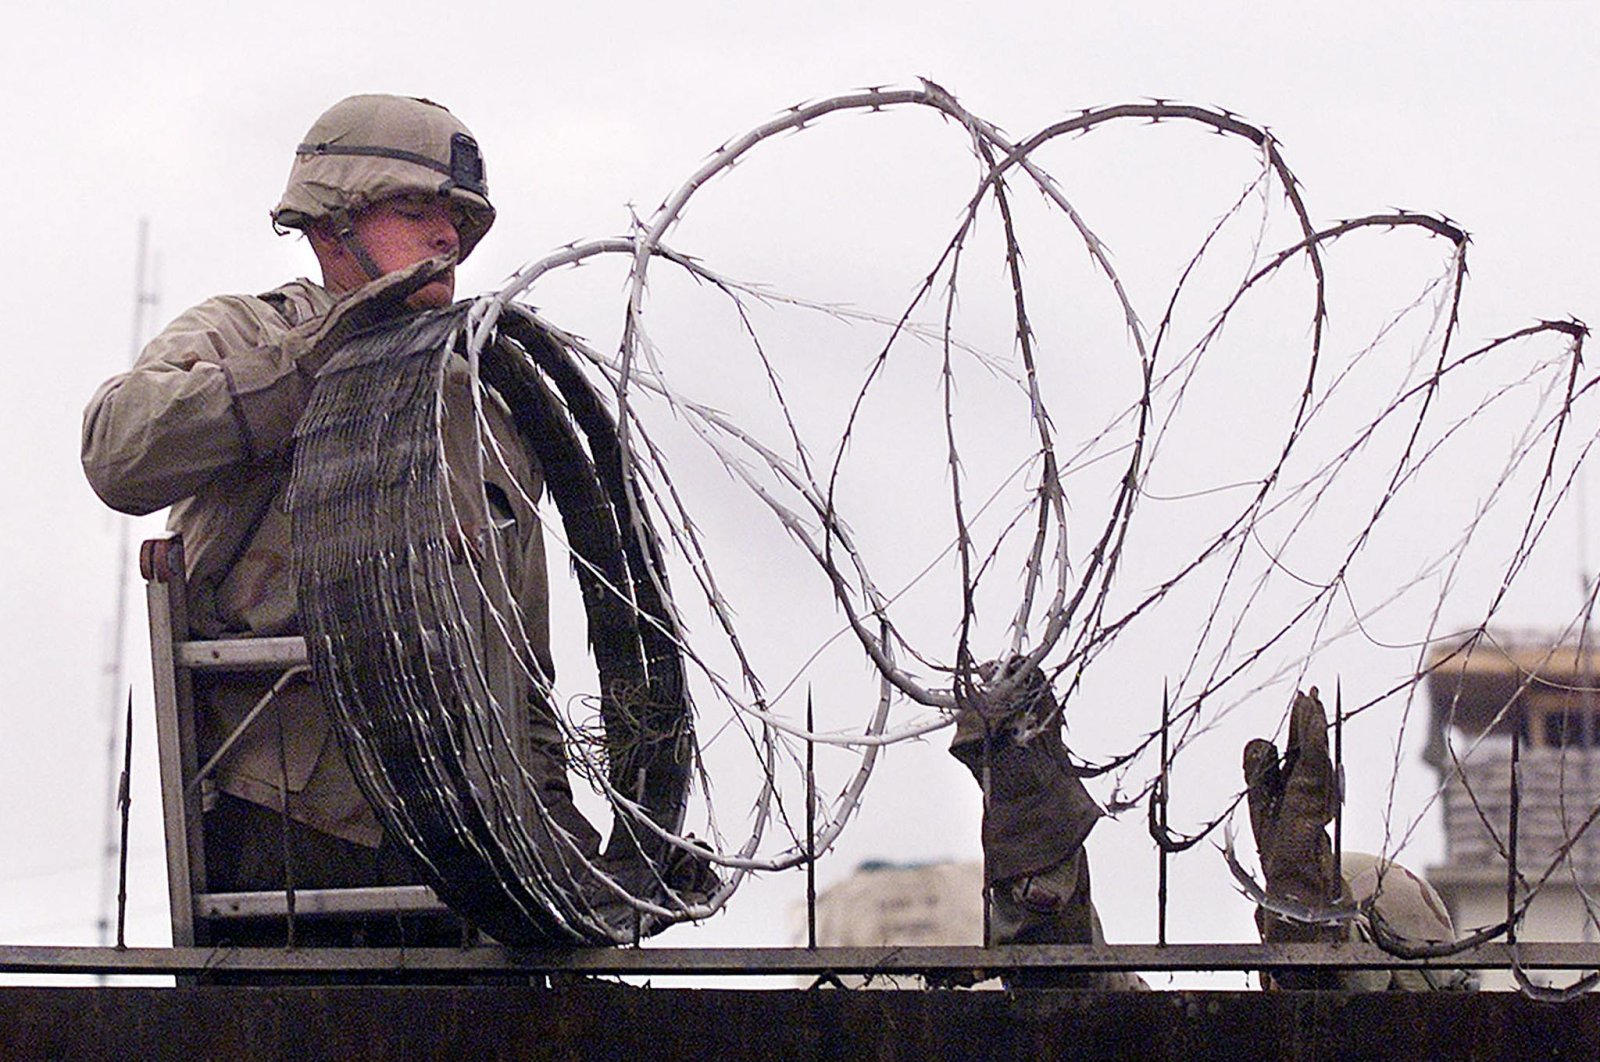 In this file photo, a U.S. Marine installs barbed wire to secure the walls of the U.S. Embassy in Kabul, Afghanistan, Jan. 11, 2002. (AFP File Photo)